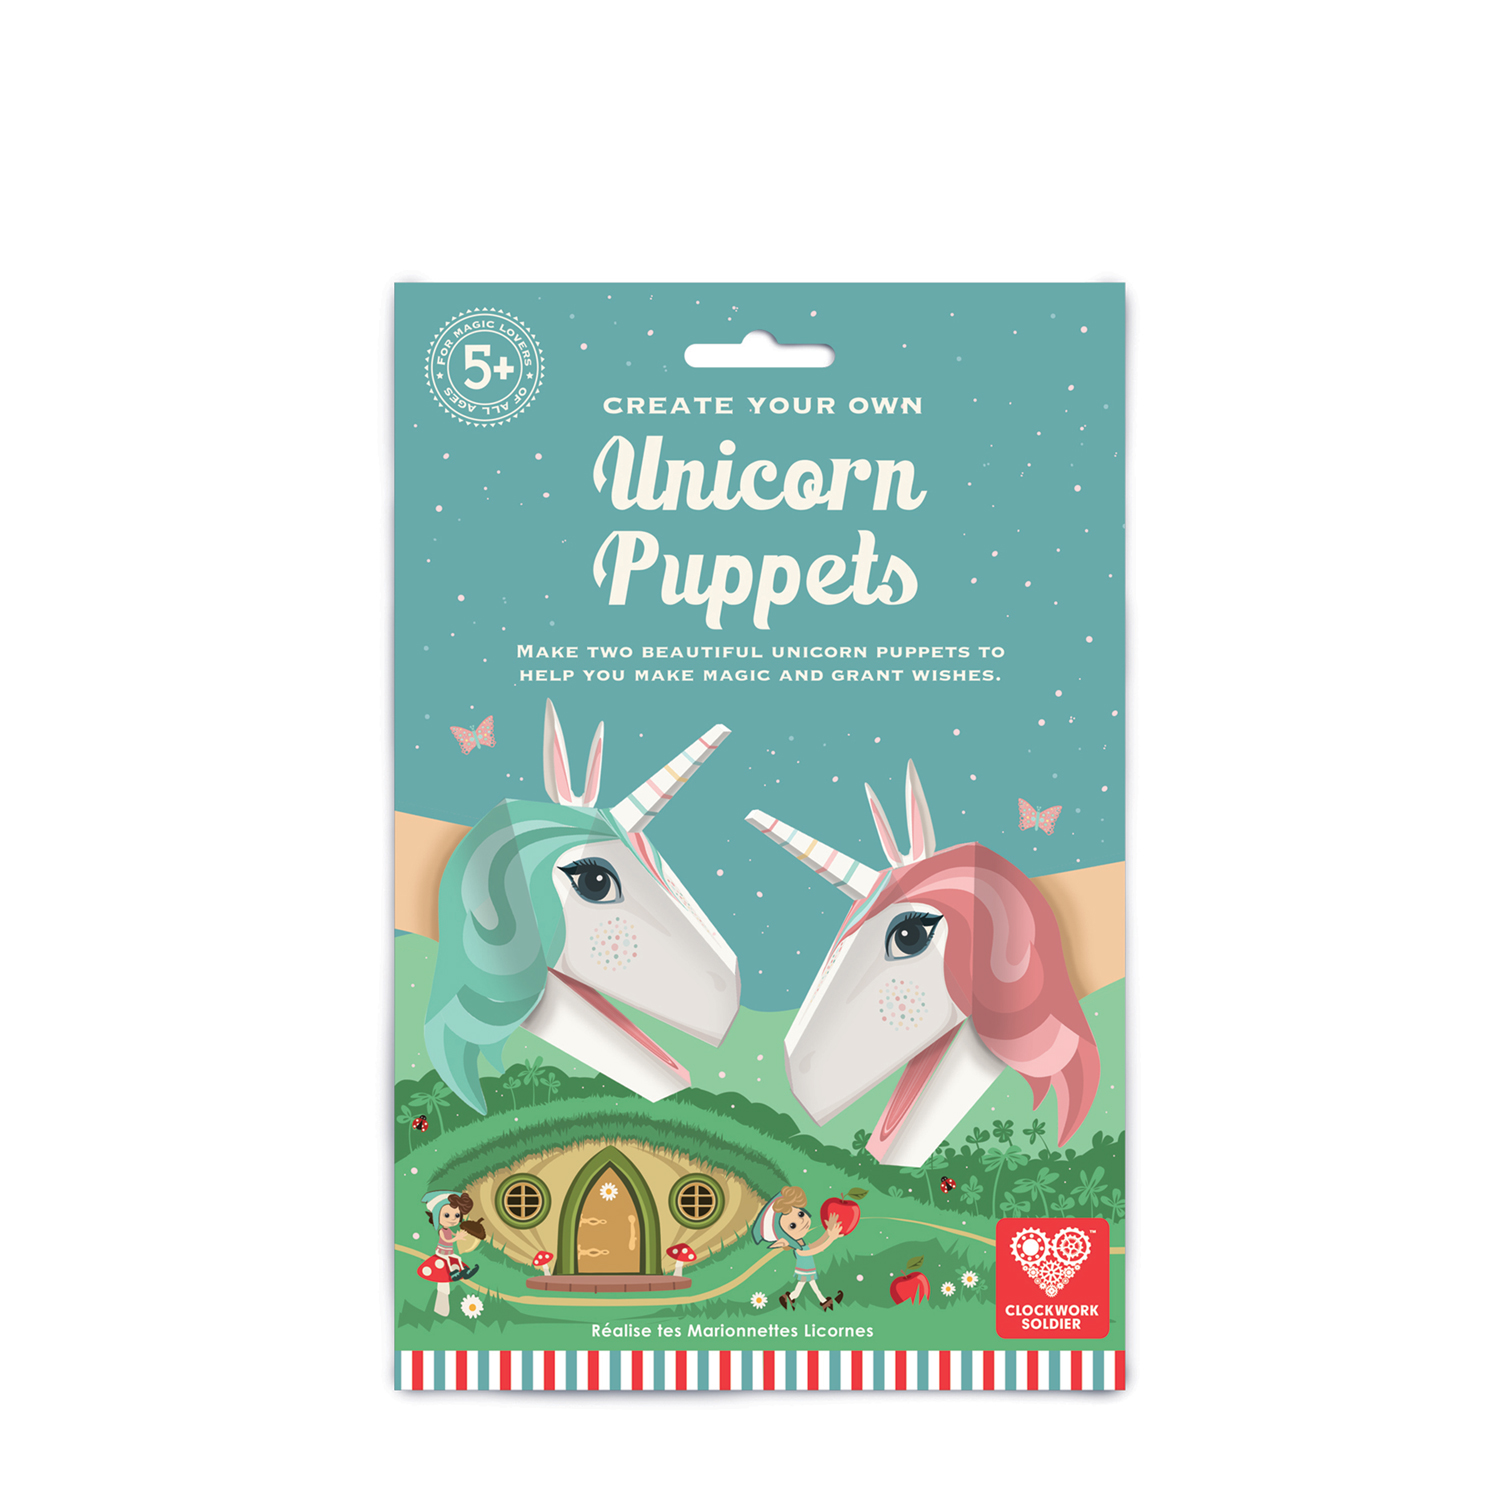 UNICORN-PUPPETS-pack-FRONT.jpg